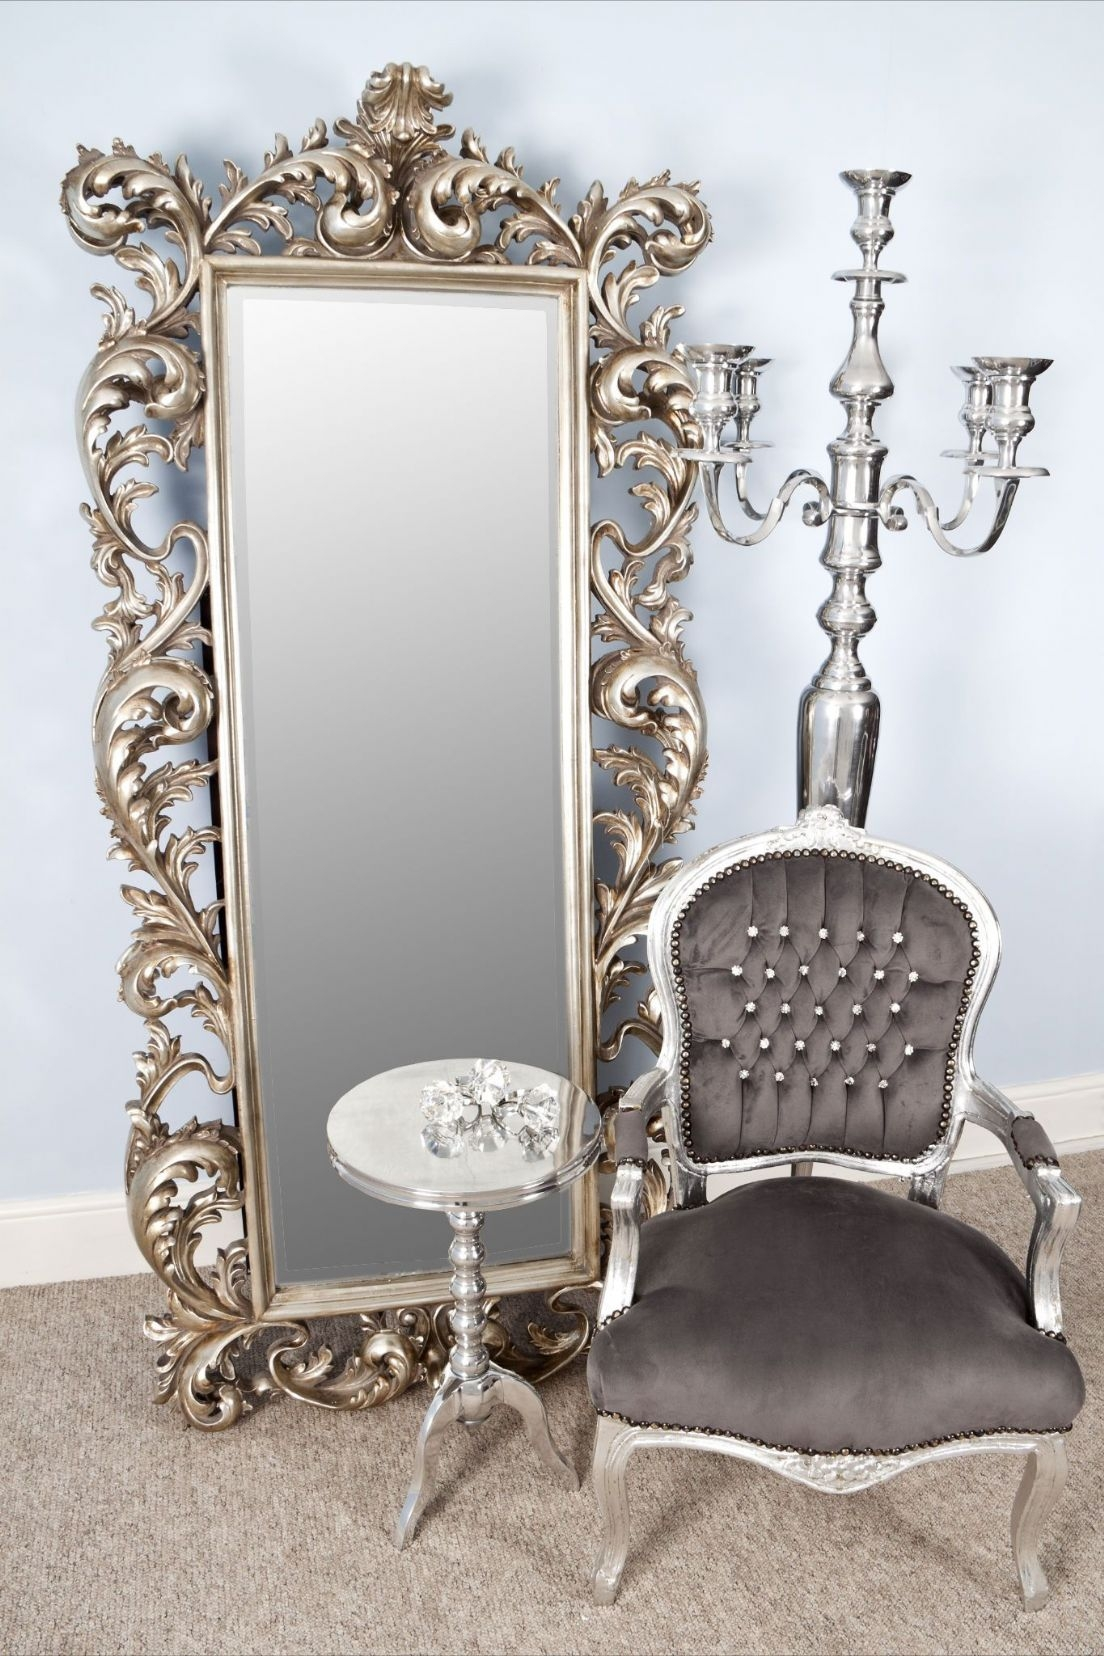 Rococo Mirrors Exclusive Mirrors Throughout Silver Mirrors For Sale (Image 10 of 15)